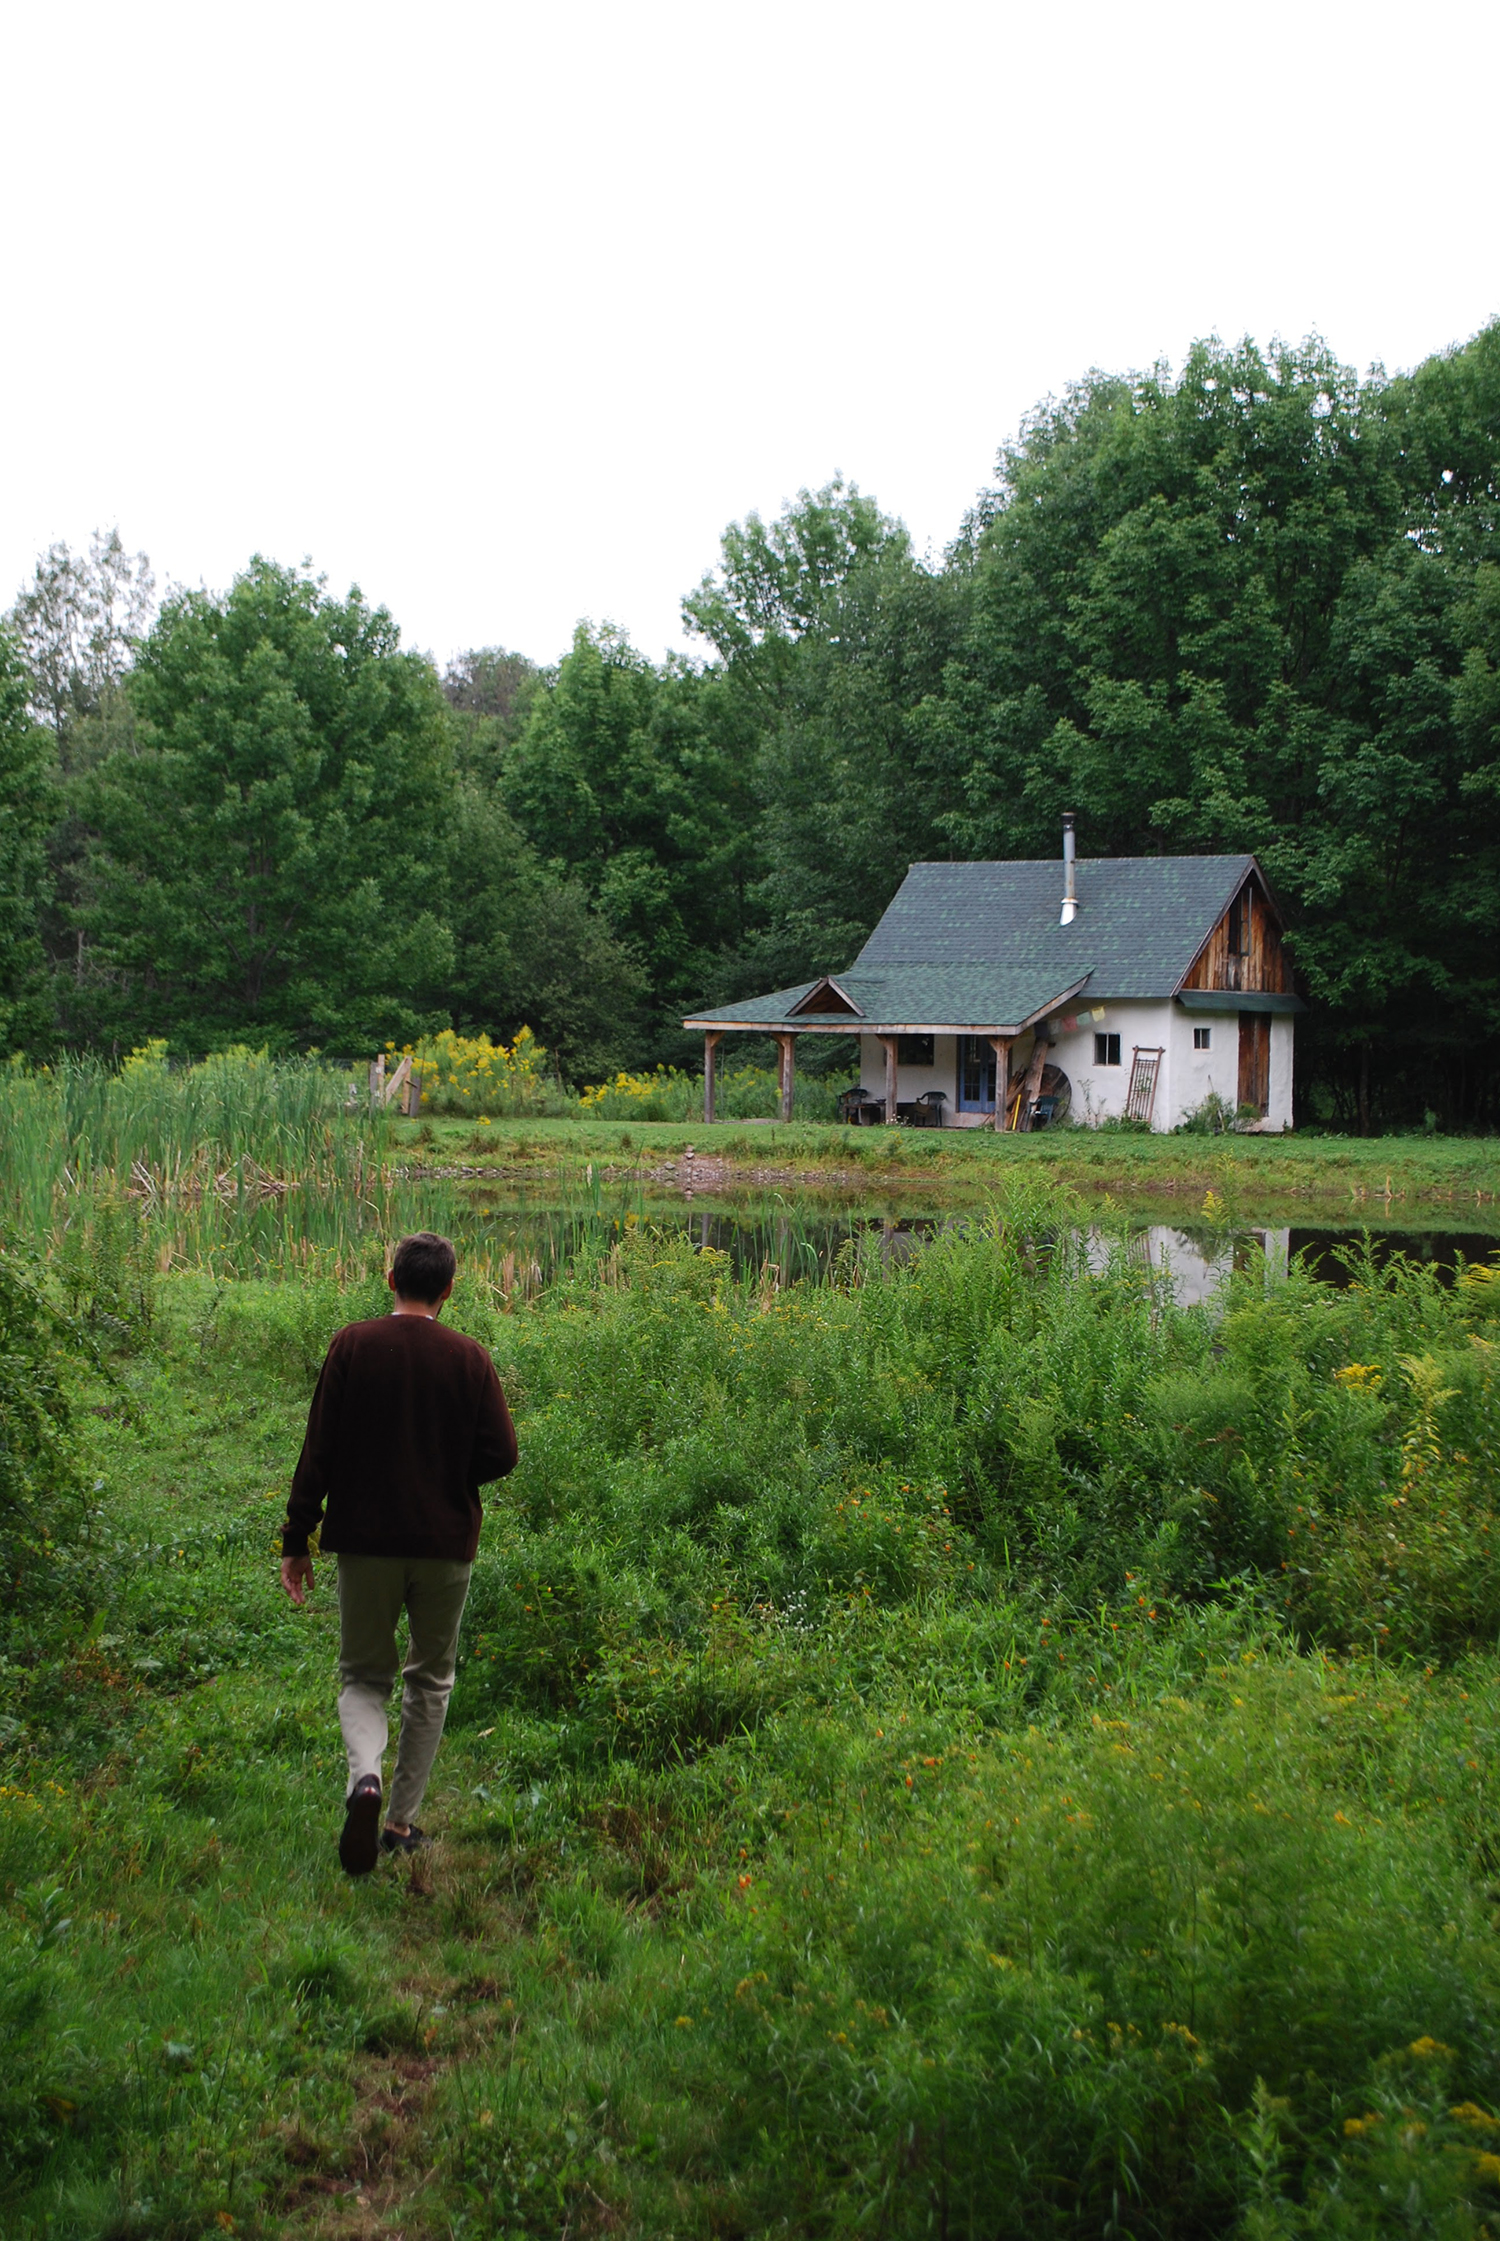 The Pond House in the Catskills, New York